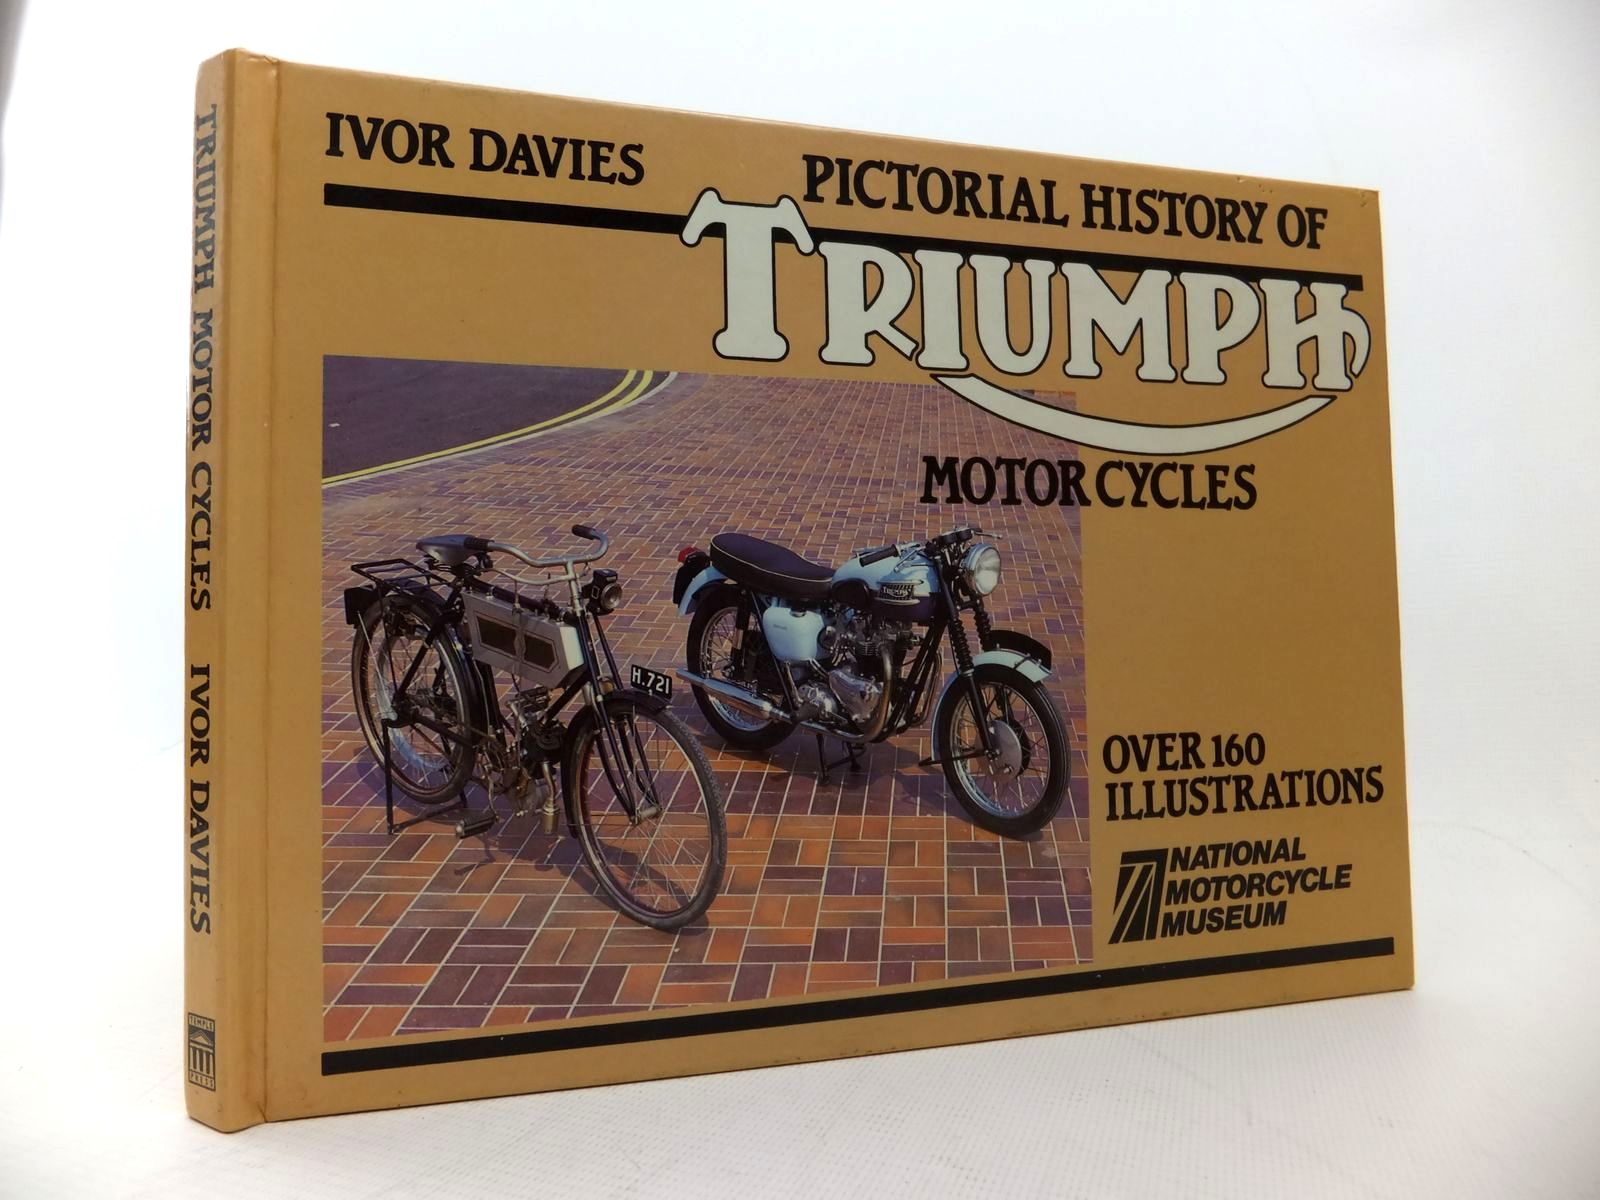 Photo of PICTORIAL HISTORY OF TRIUMPH MOTOR CYCLES written by Davies, Ivor published by Temple Press (STOCK CODE: 1814171)  for sale by Stella & Rose's Books